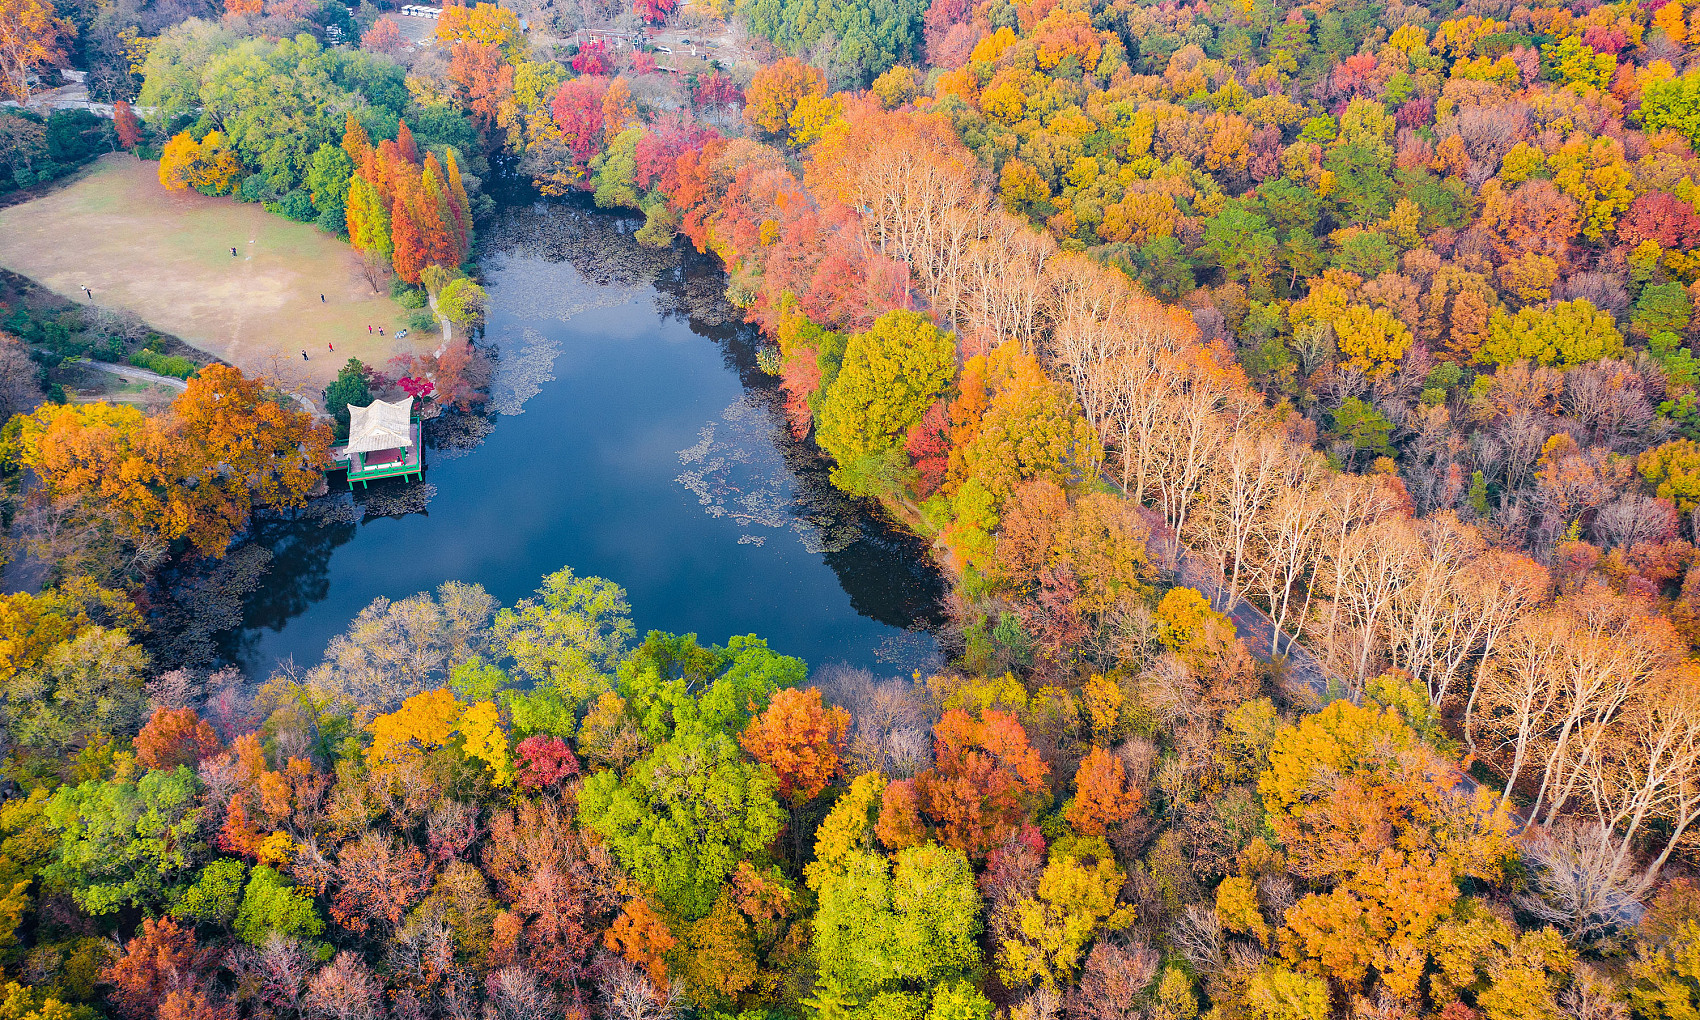 Zhongshan Mountain takes on a colorful look as winter comes